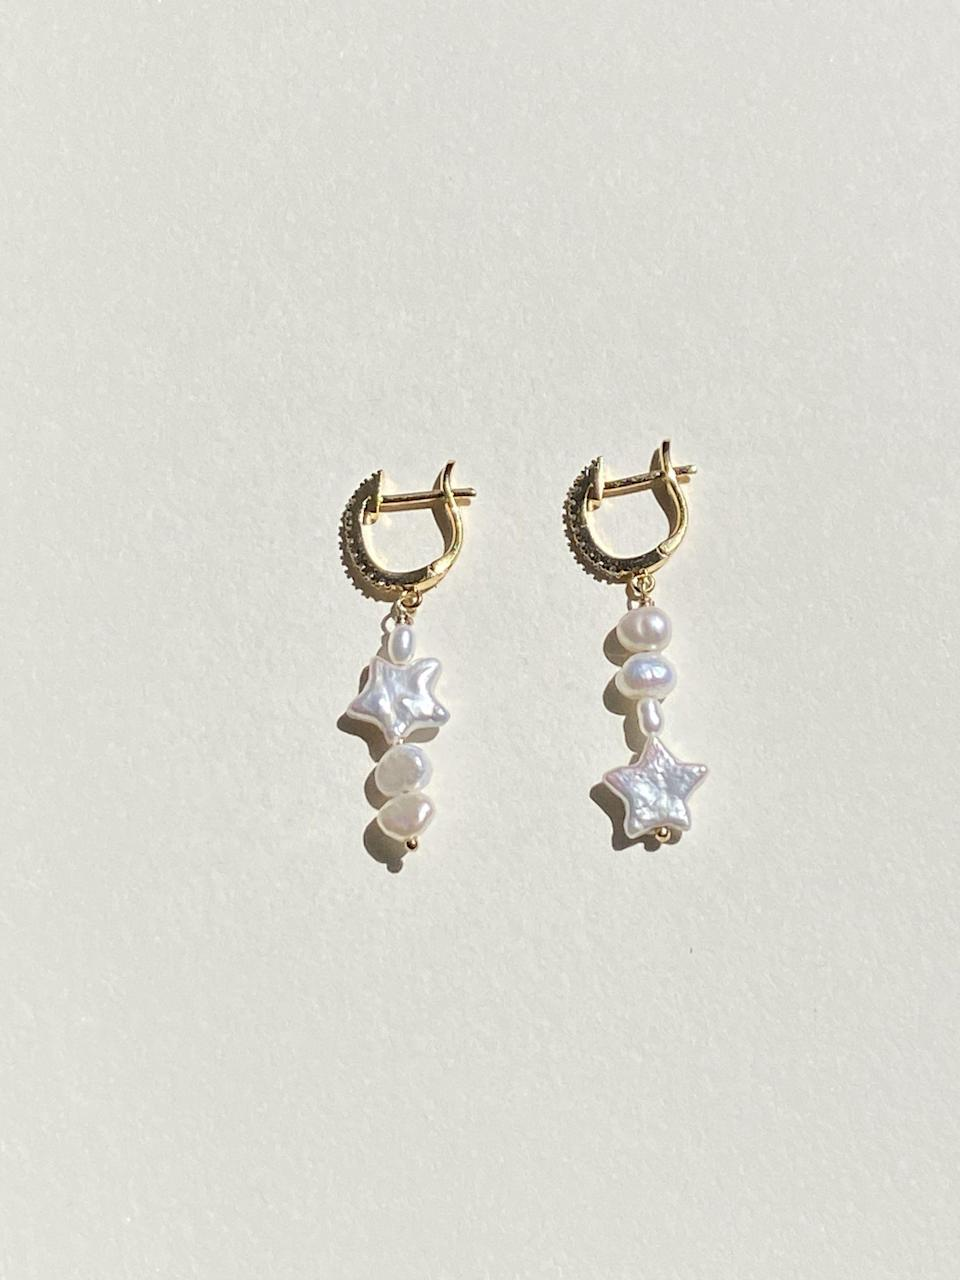 """<p><strong>Bebe Rouge</strong></p><p>bebe-rouge.com</p><p><strong>$52.00</strong></p><p><a href=""""https://bebe-rouge.com/collections/earrings/products/luna-hopps"""" rel=""""nofollow noopener"""" target=""""_blank"""" data-ylk=""""slk:Shop Now"""" class=""""link rapid-noclick-resp"""">Shop Now</a></p><p>Okay, name something cuter than freshwater pearls in the shape of a star. No, seriously. I'll wait.</p>"""